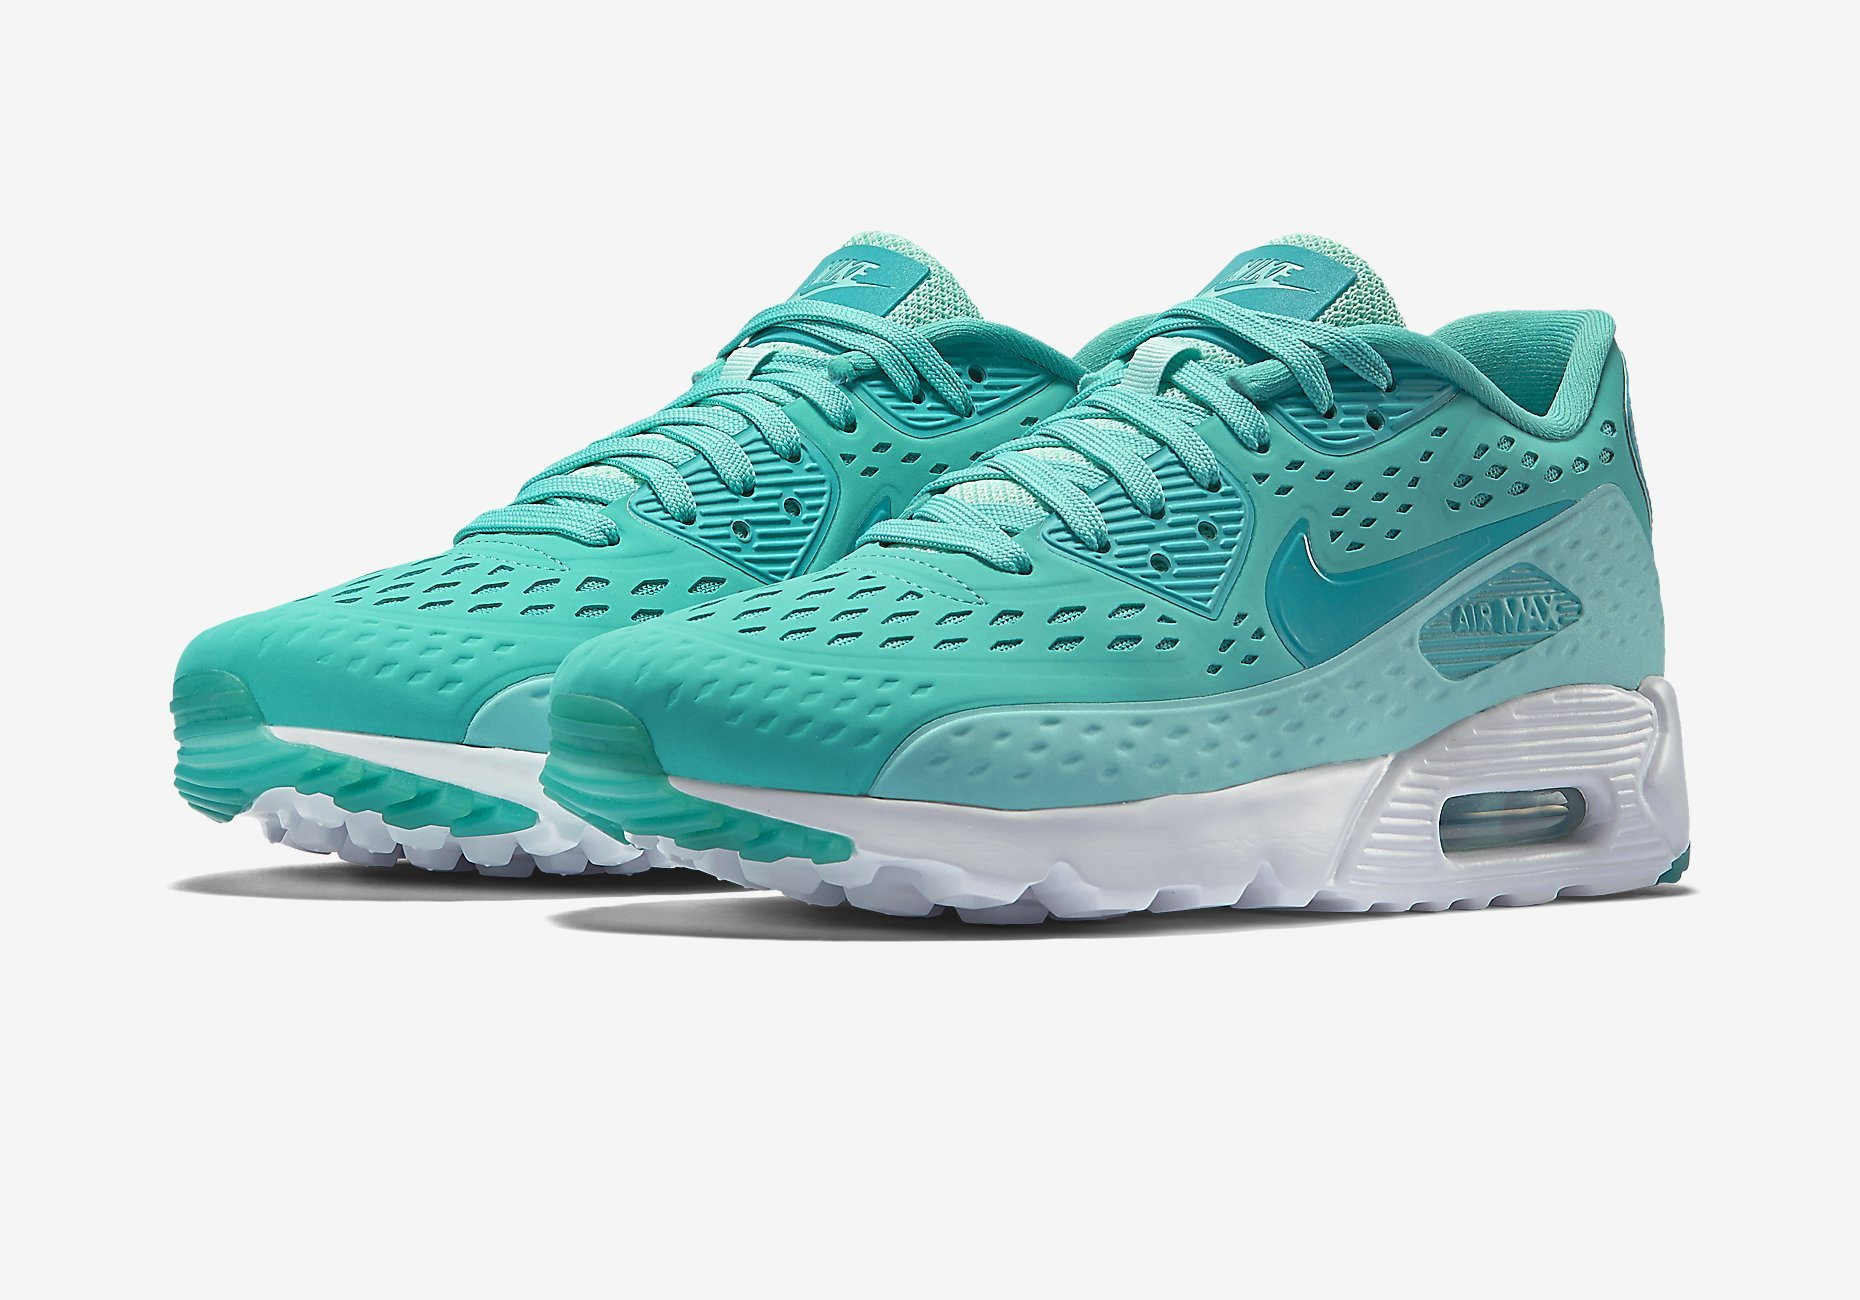 designer fashion 0d94c cadc7 Nike Air Max 90 Ultra Breathe – Light Retro   Artisan Teal